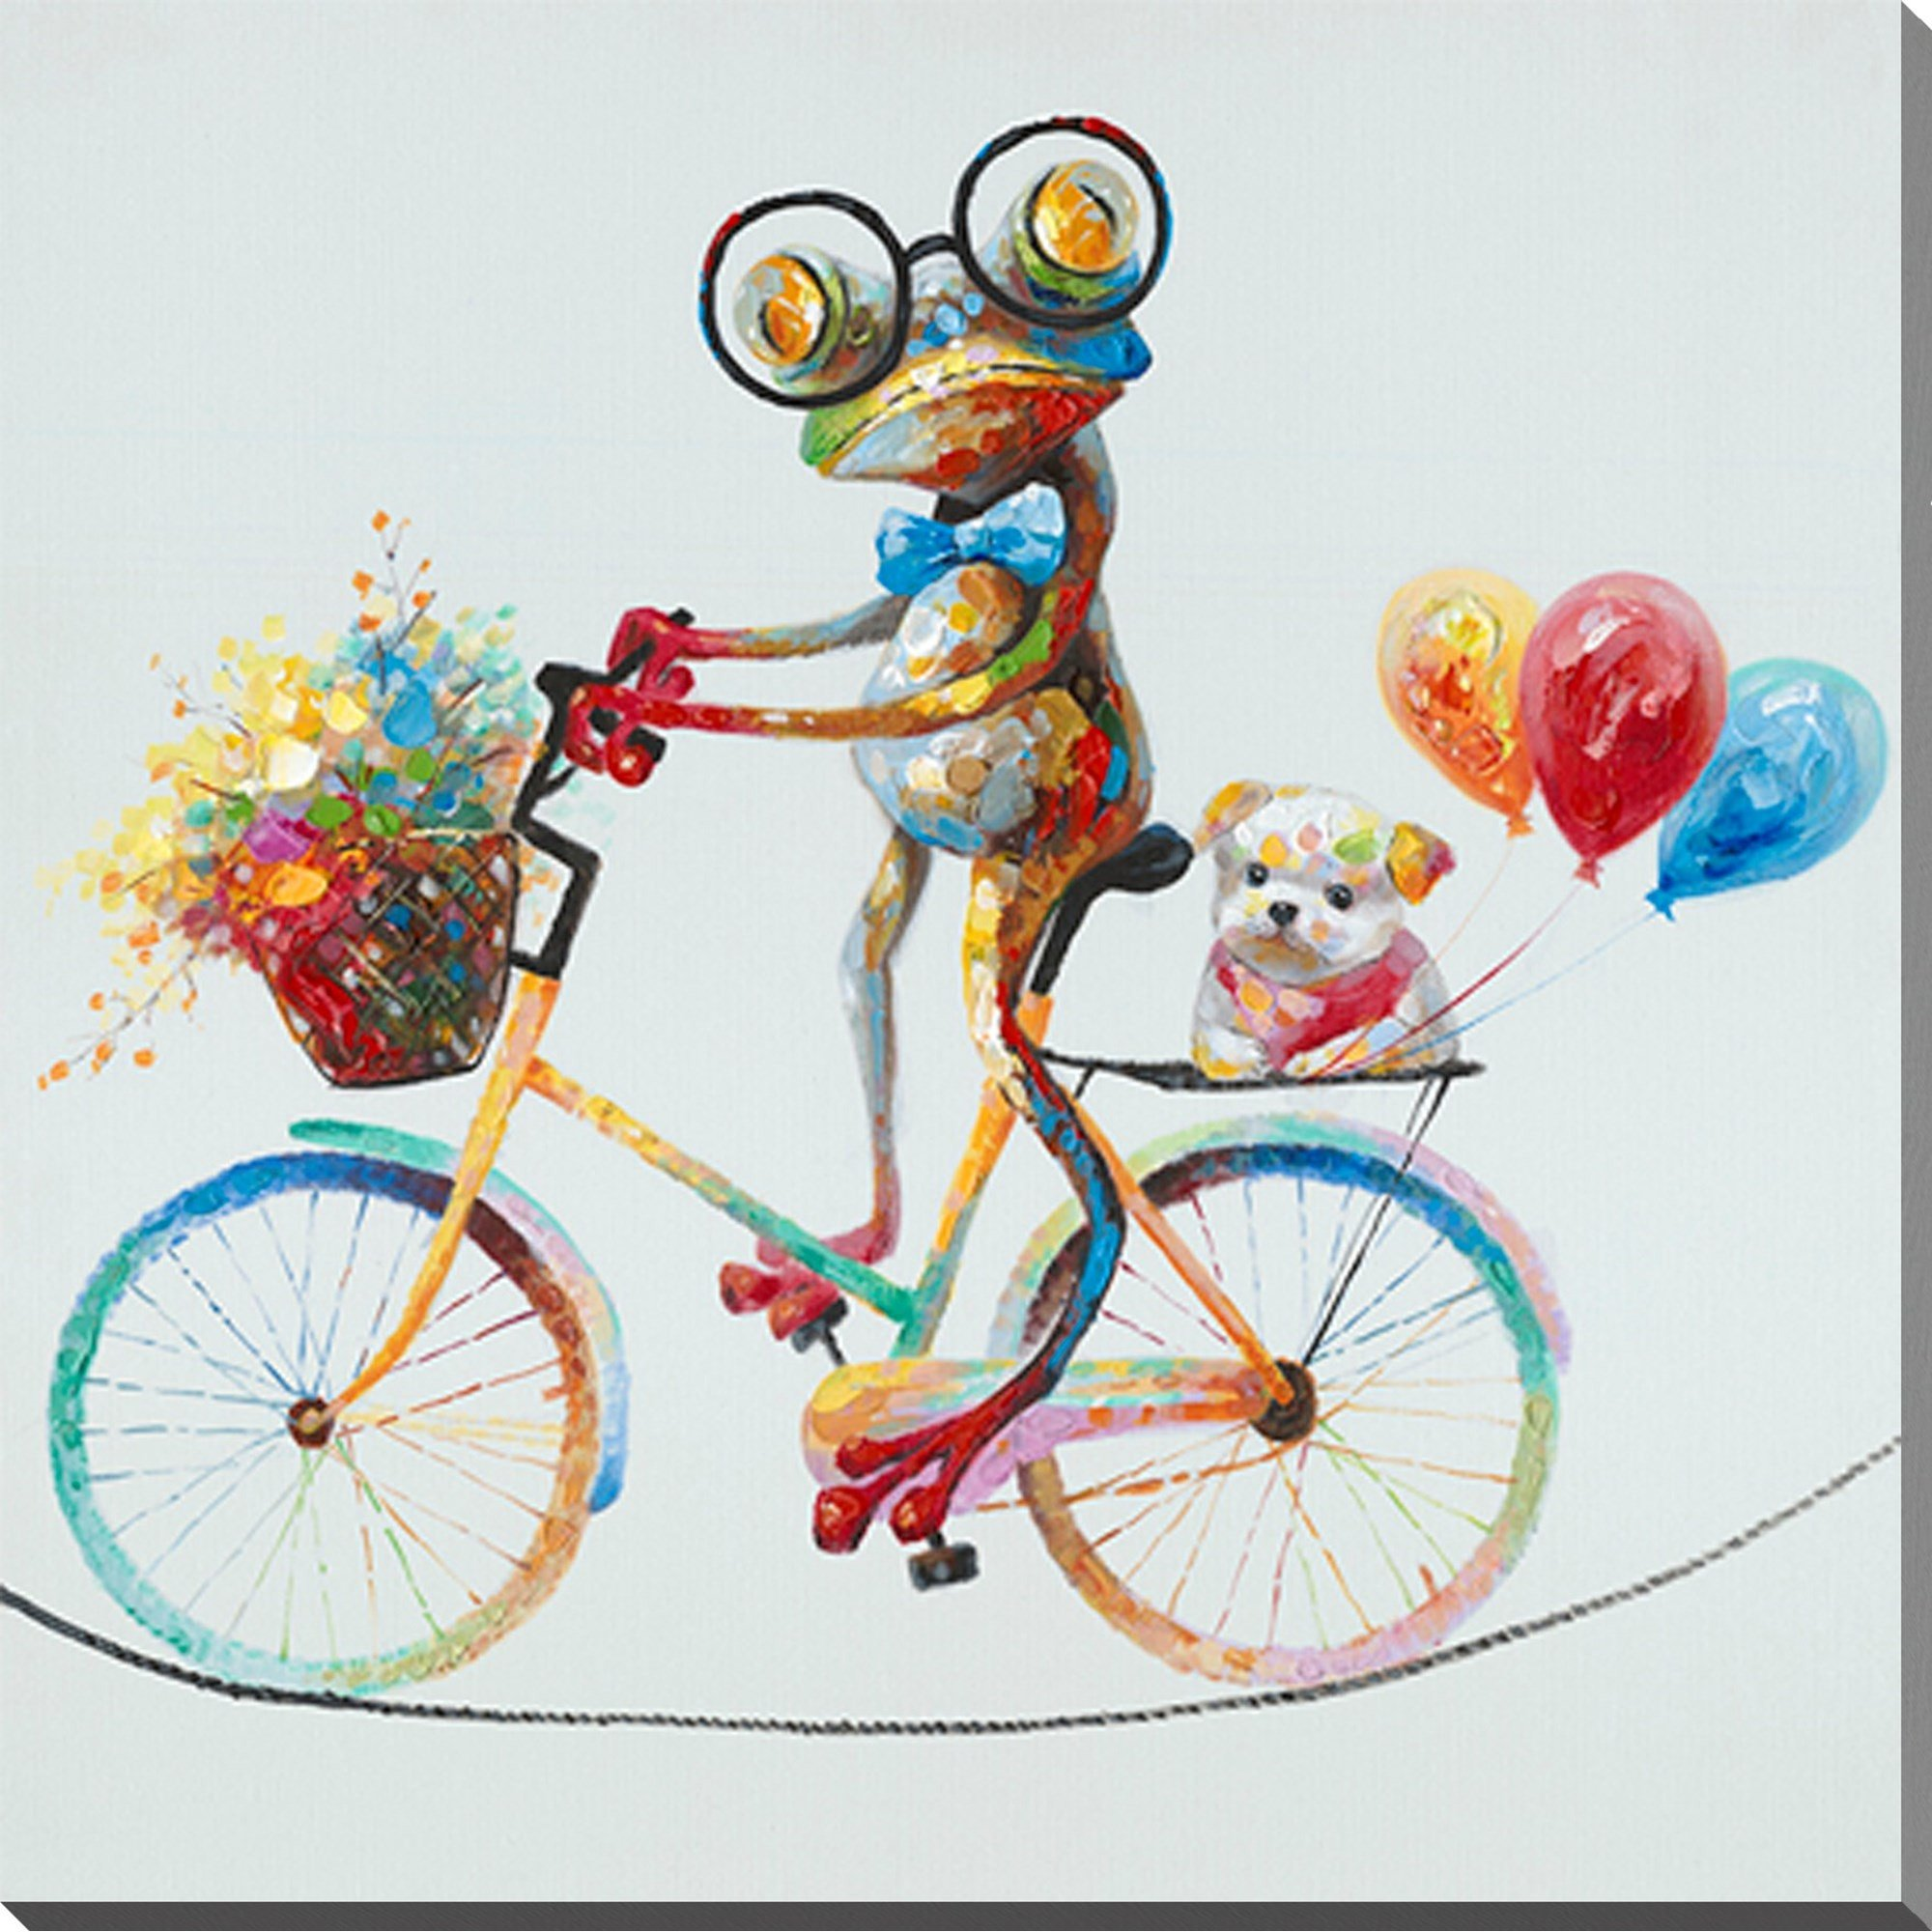 SEVEN WALL ARTS - 100% Hand Painted Oil Painting Cute Animal Colorful Travel the Frog Painting for Living Room Kids Room Decor 24 x 24 Inch